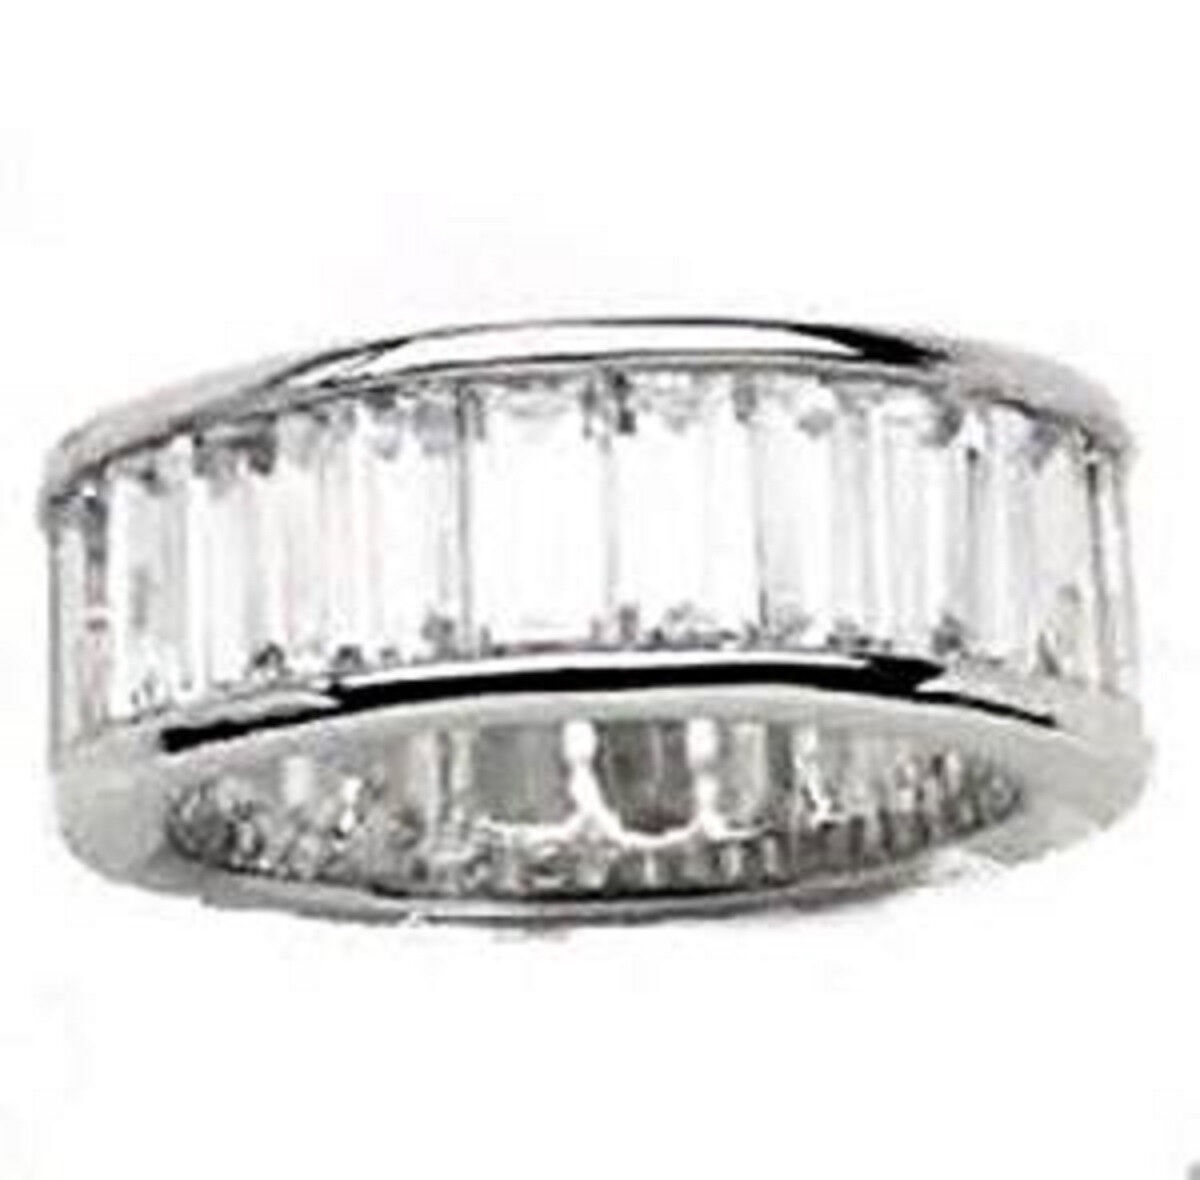 Marilyn Monroe Jewelry Wedding Eternity Ring Joe Dimaggio